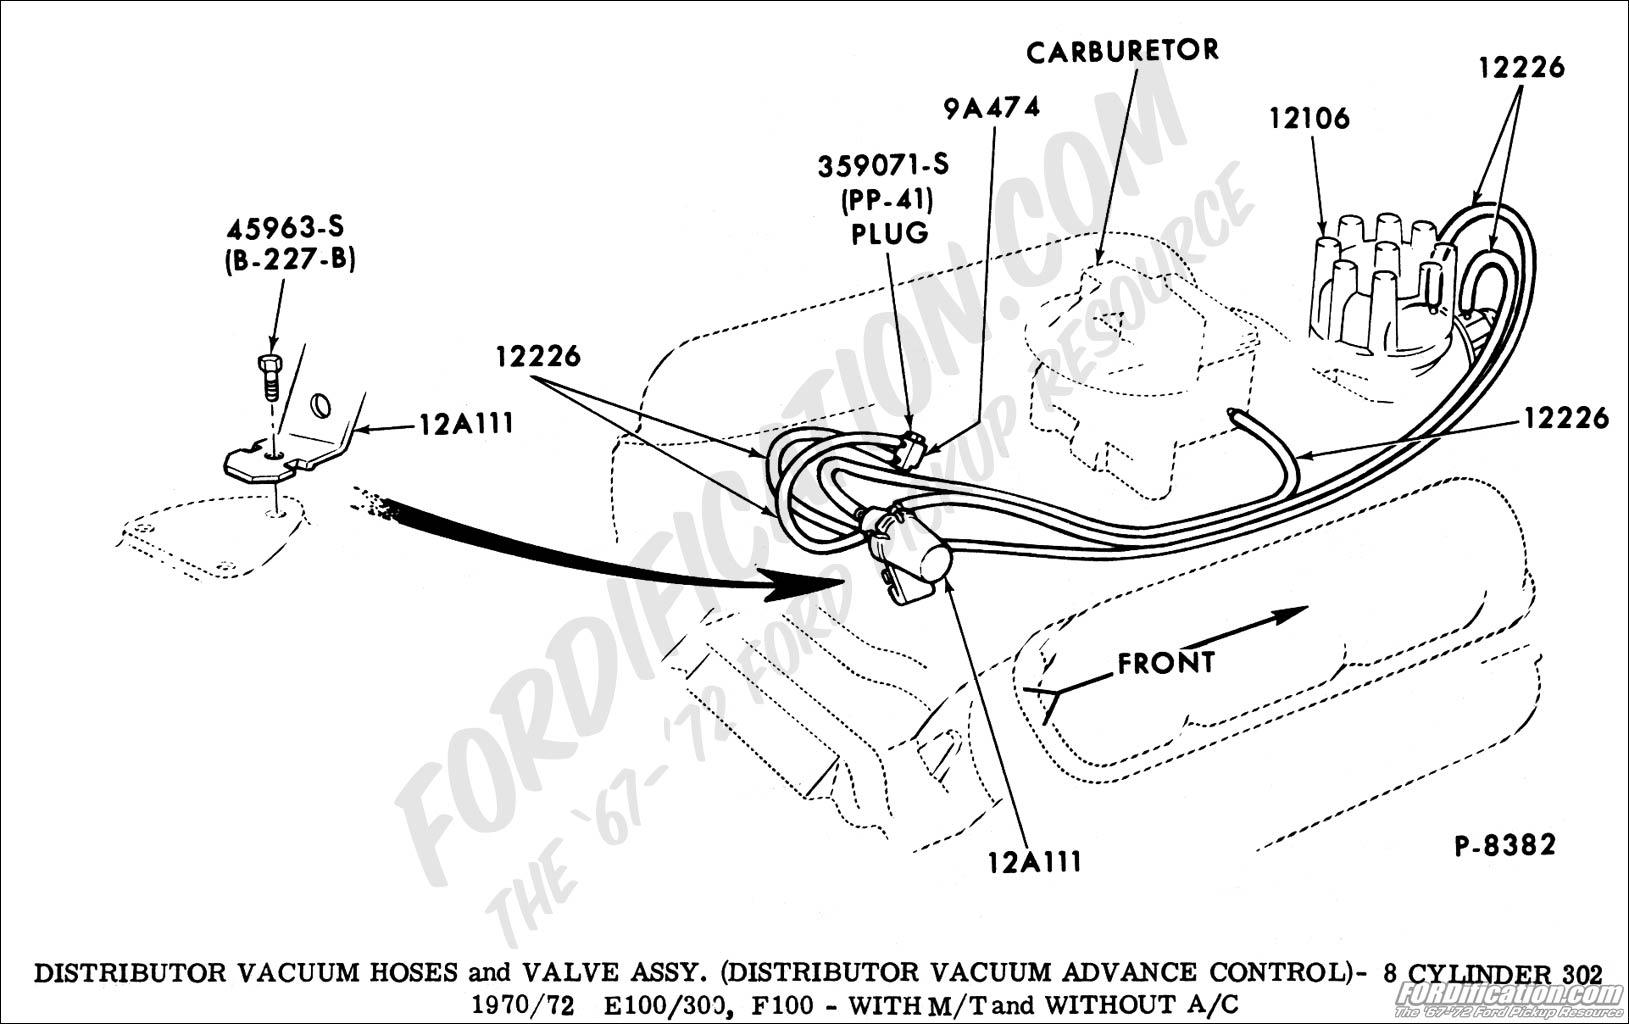 ford truck technical drawings and schematics section i distributor vacuum hoses and valve assy distributor vacuum advance control 8 cylinder 302 1970 1972 e100 d350 f100 m t and w o a c